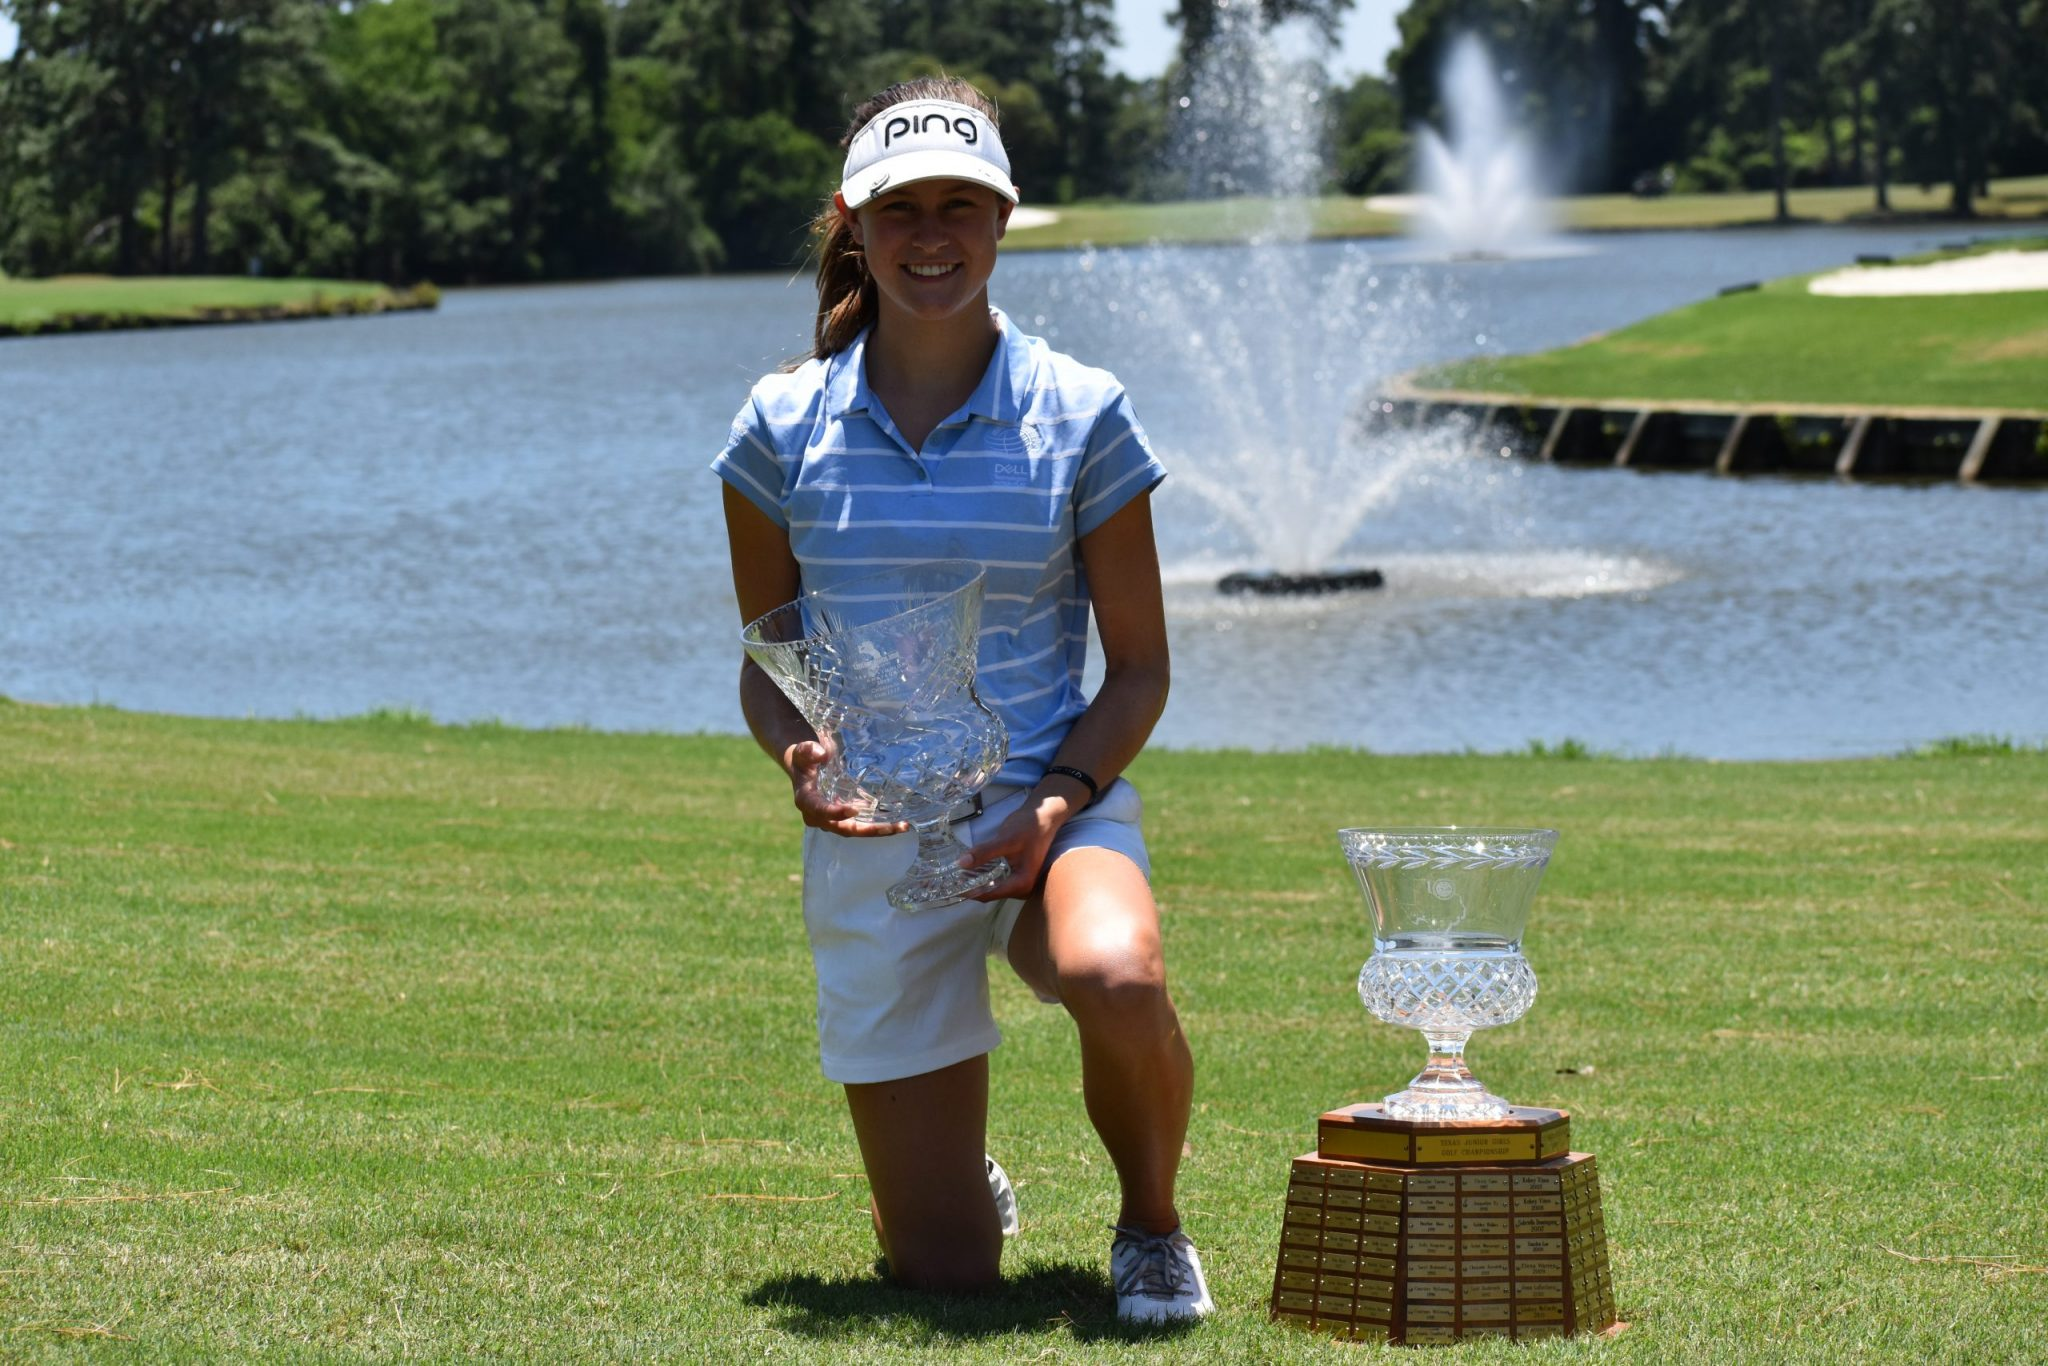 2019 Texas Junior Amateur Girls Champion